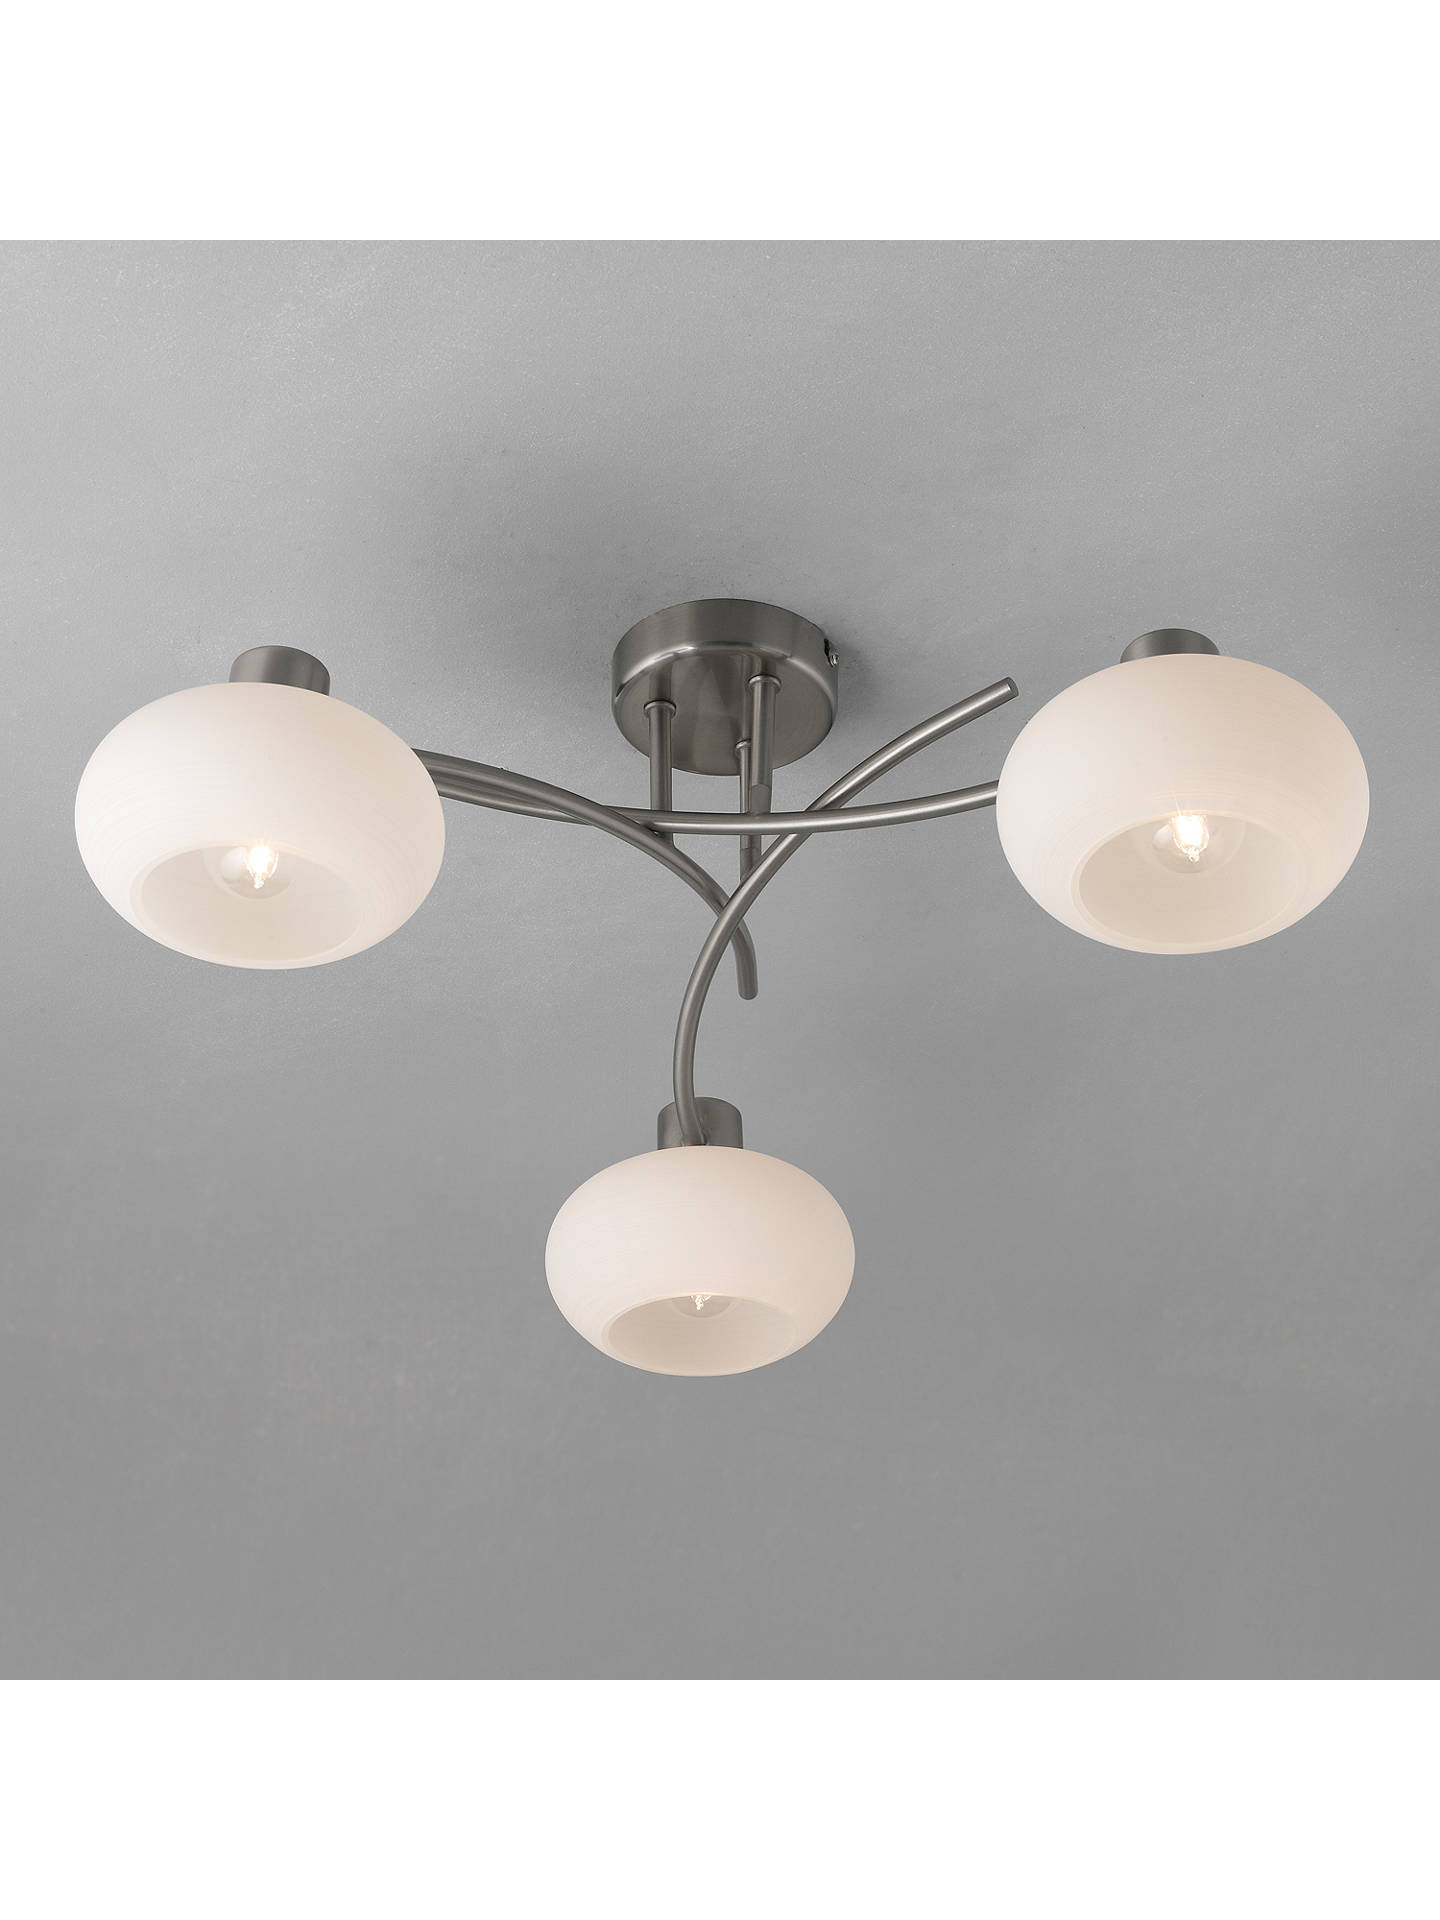 John Lewis Partners Elio 3 Arm Ceiling Light